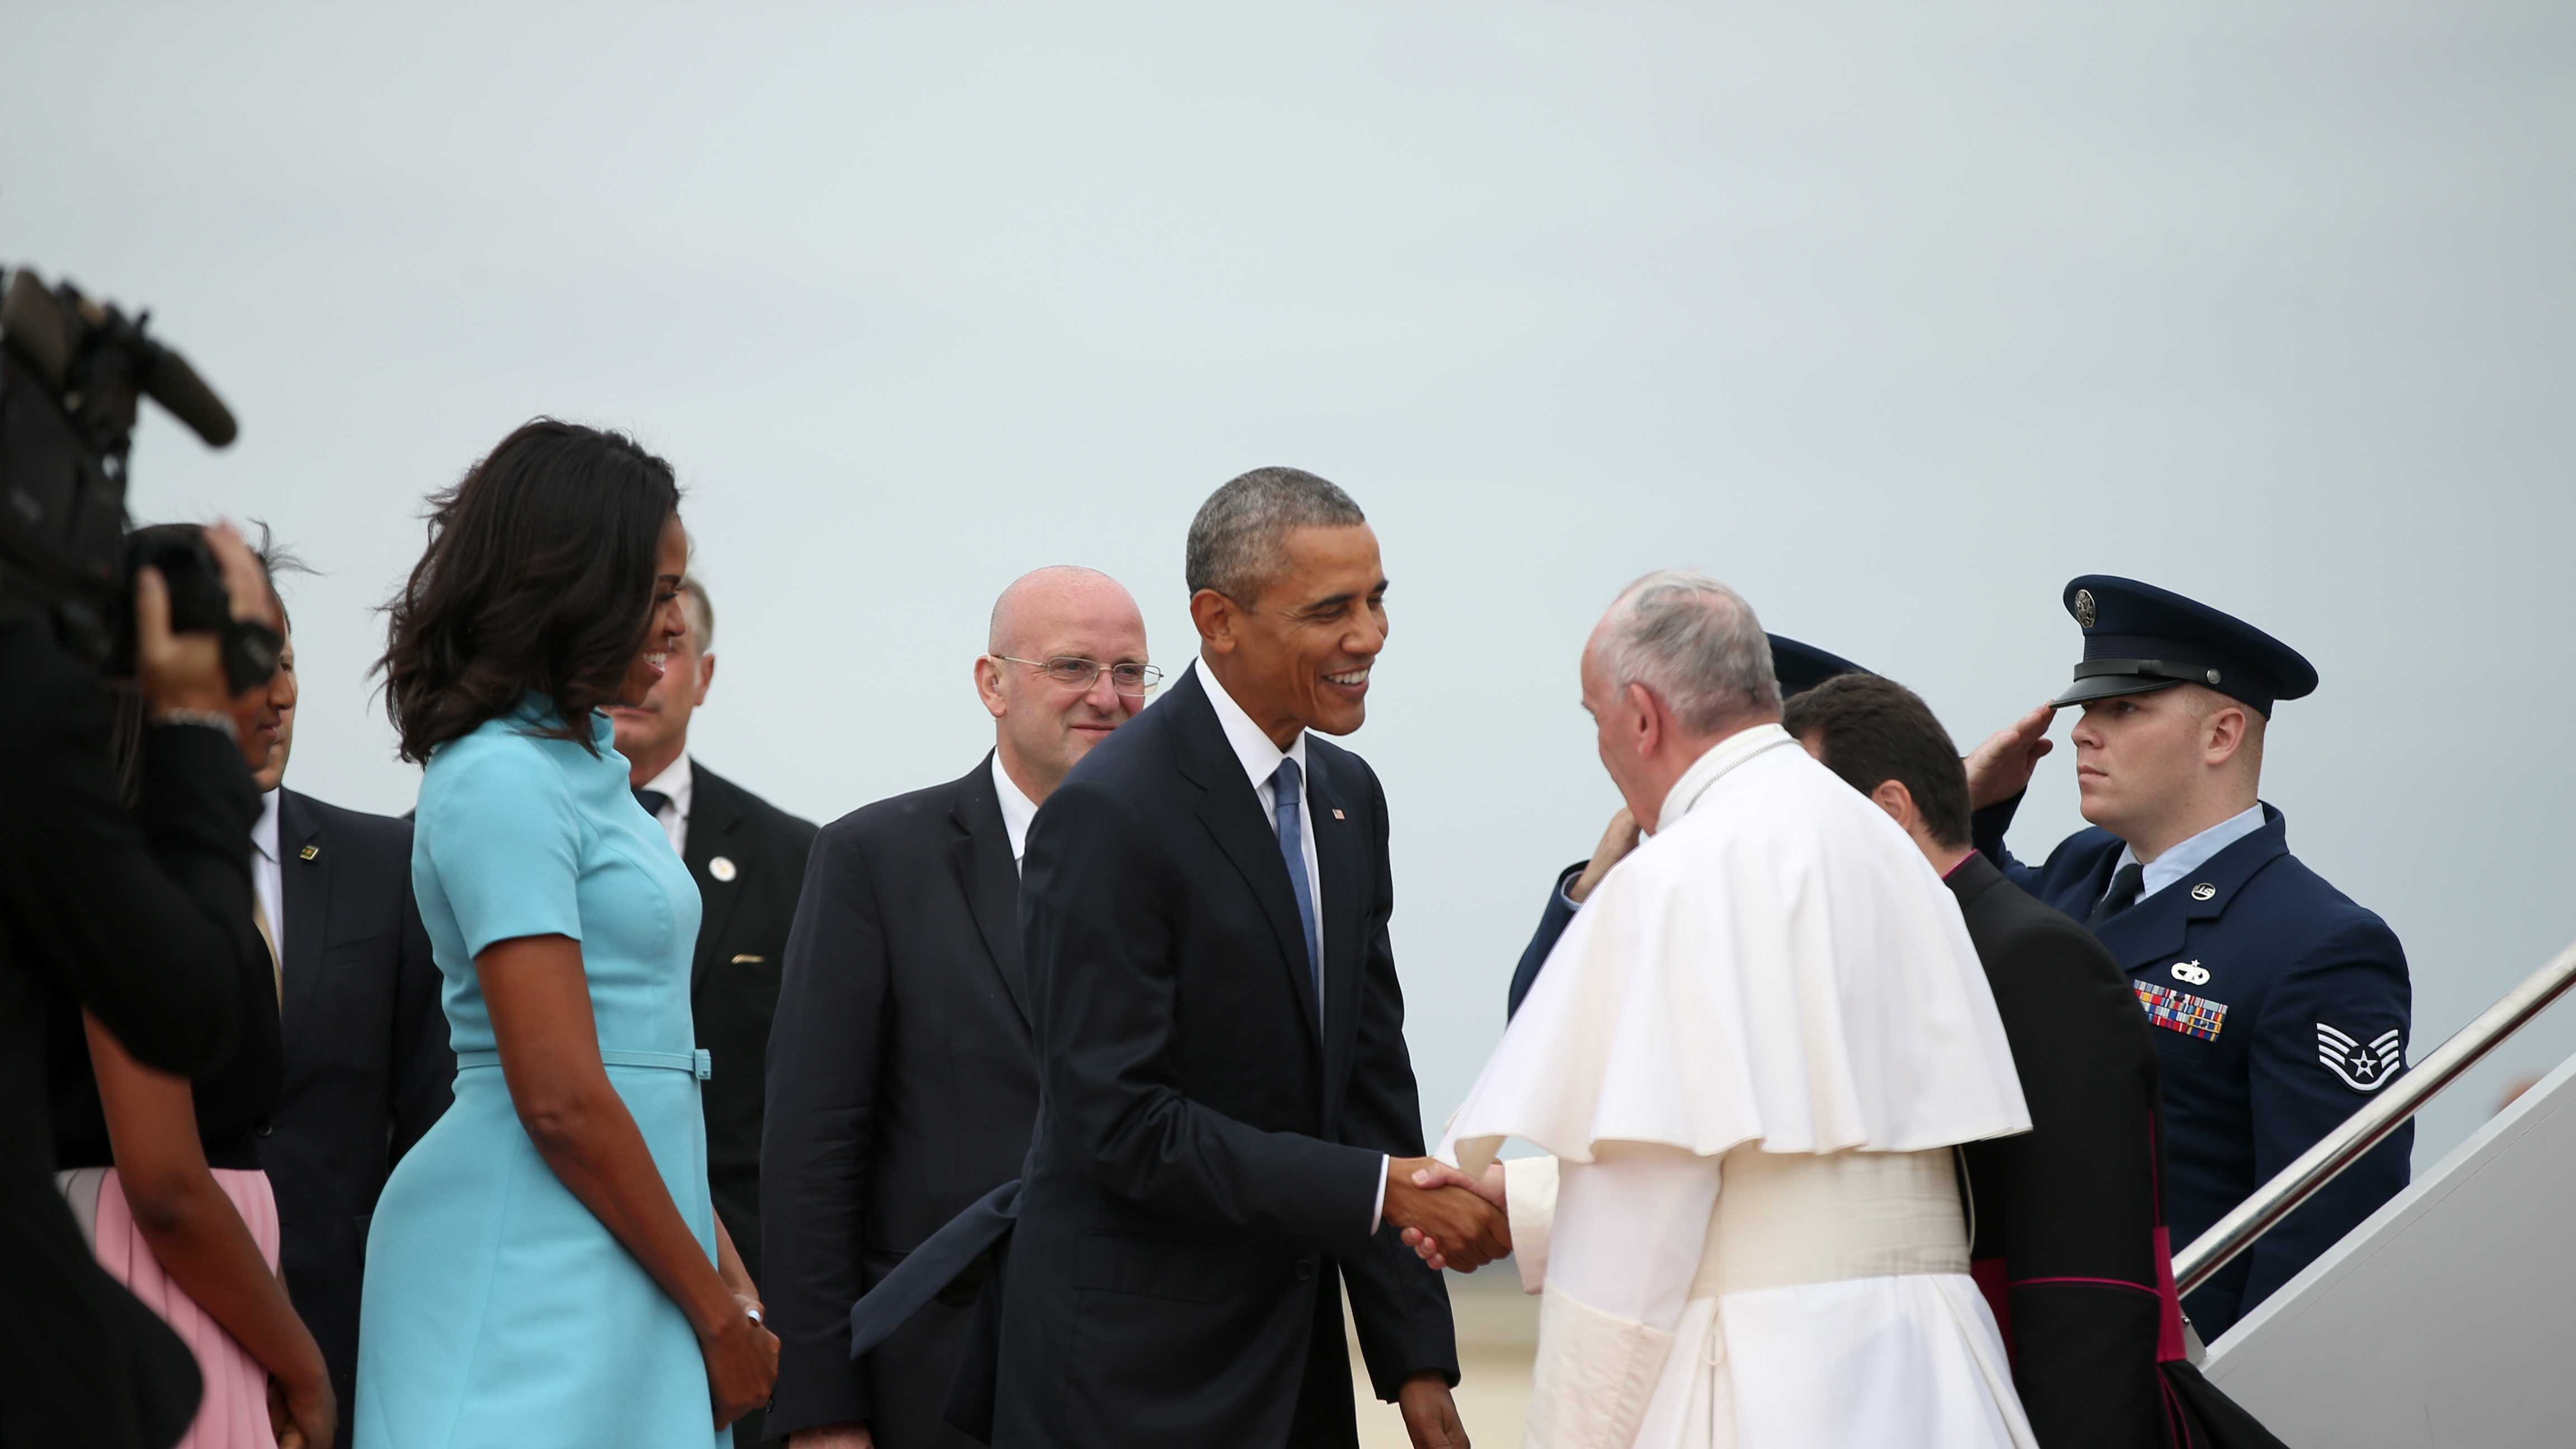 President Barack Obama, first lady Michelle Obama, and others, greet Pope Francis upon his arrival at Andrews Air Force Base, Md., Tuesday, Sept. 22, 2015. (AP Photo/Andrew Harnik)